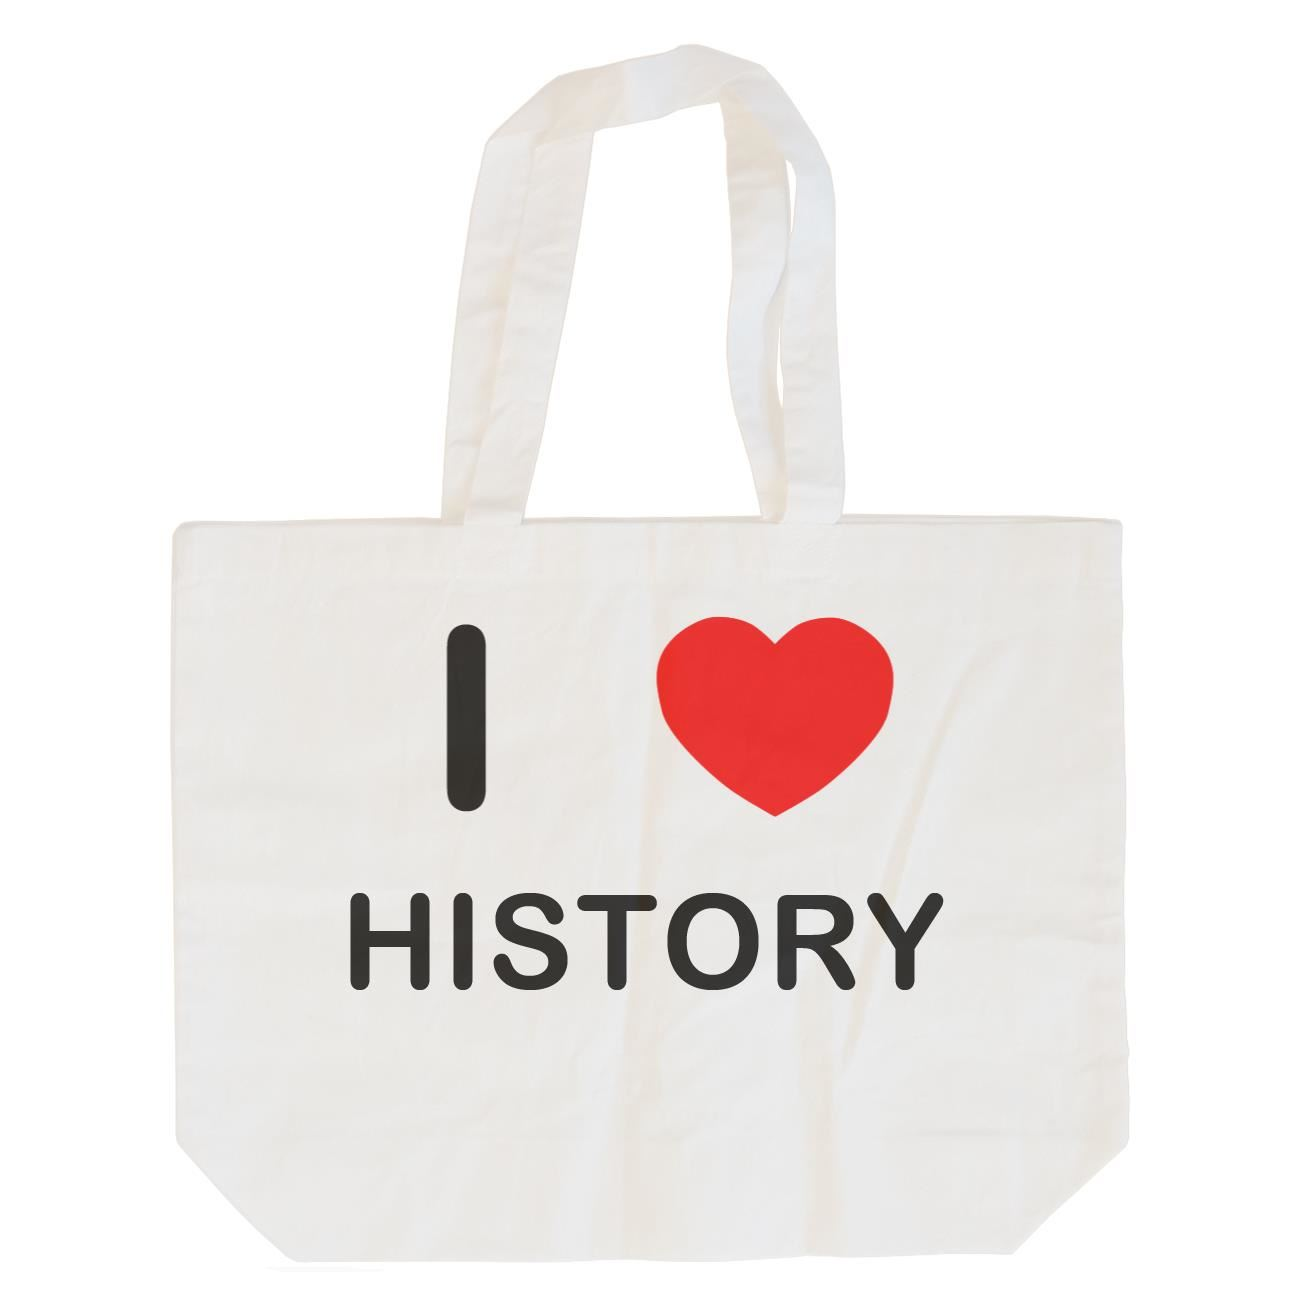 I Love History - Cotton Bag | Size choice Tote, Shopper or Sling